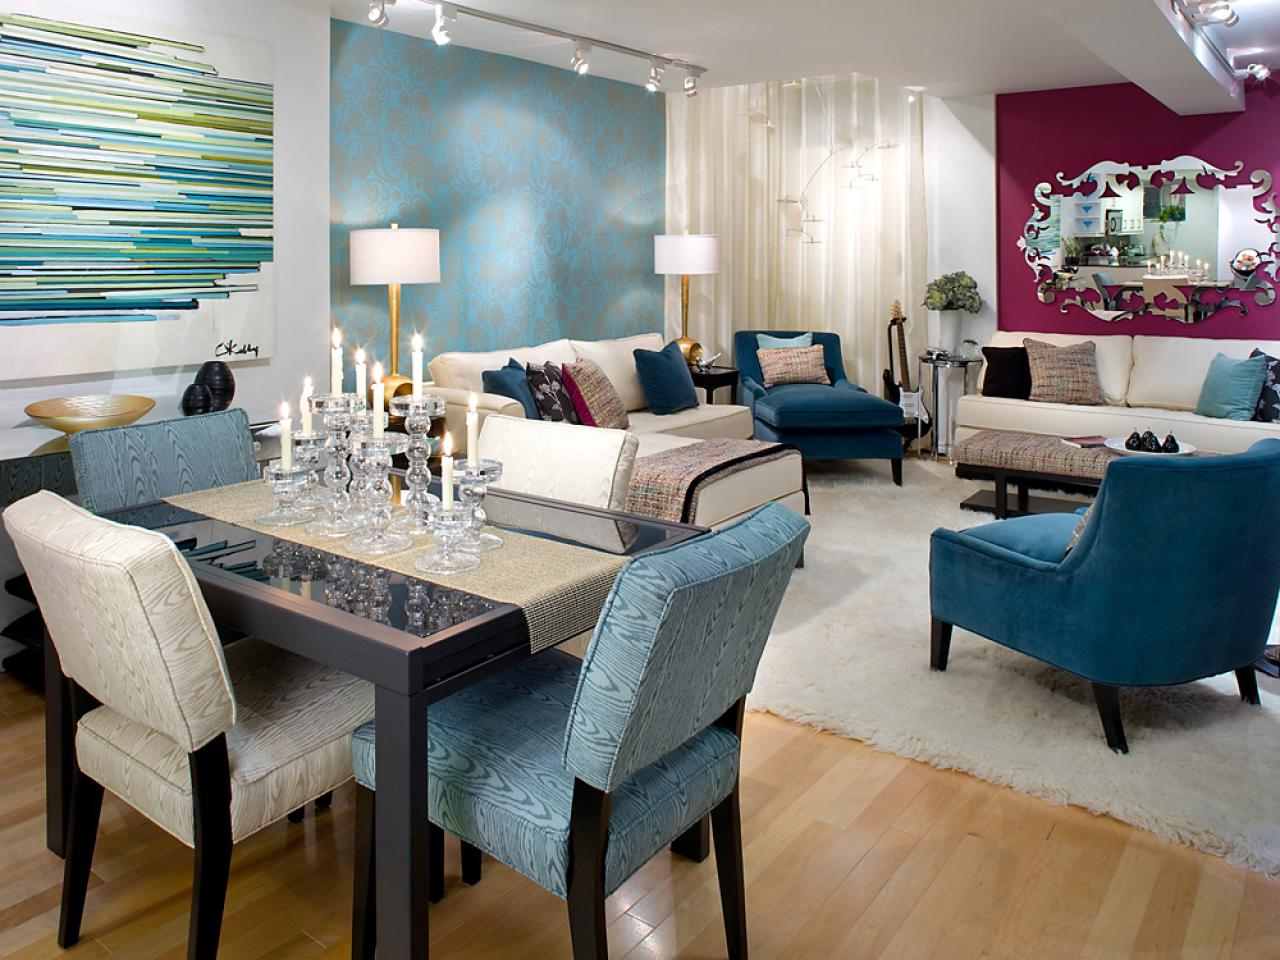 Decorate A Room: Design Tips From Candice Olson